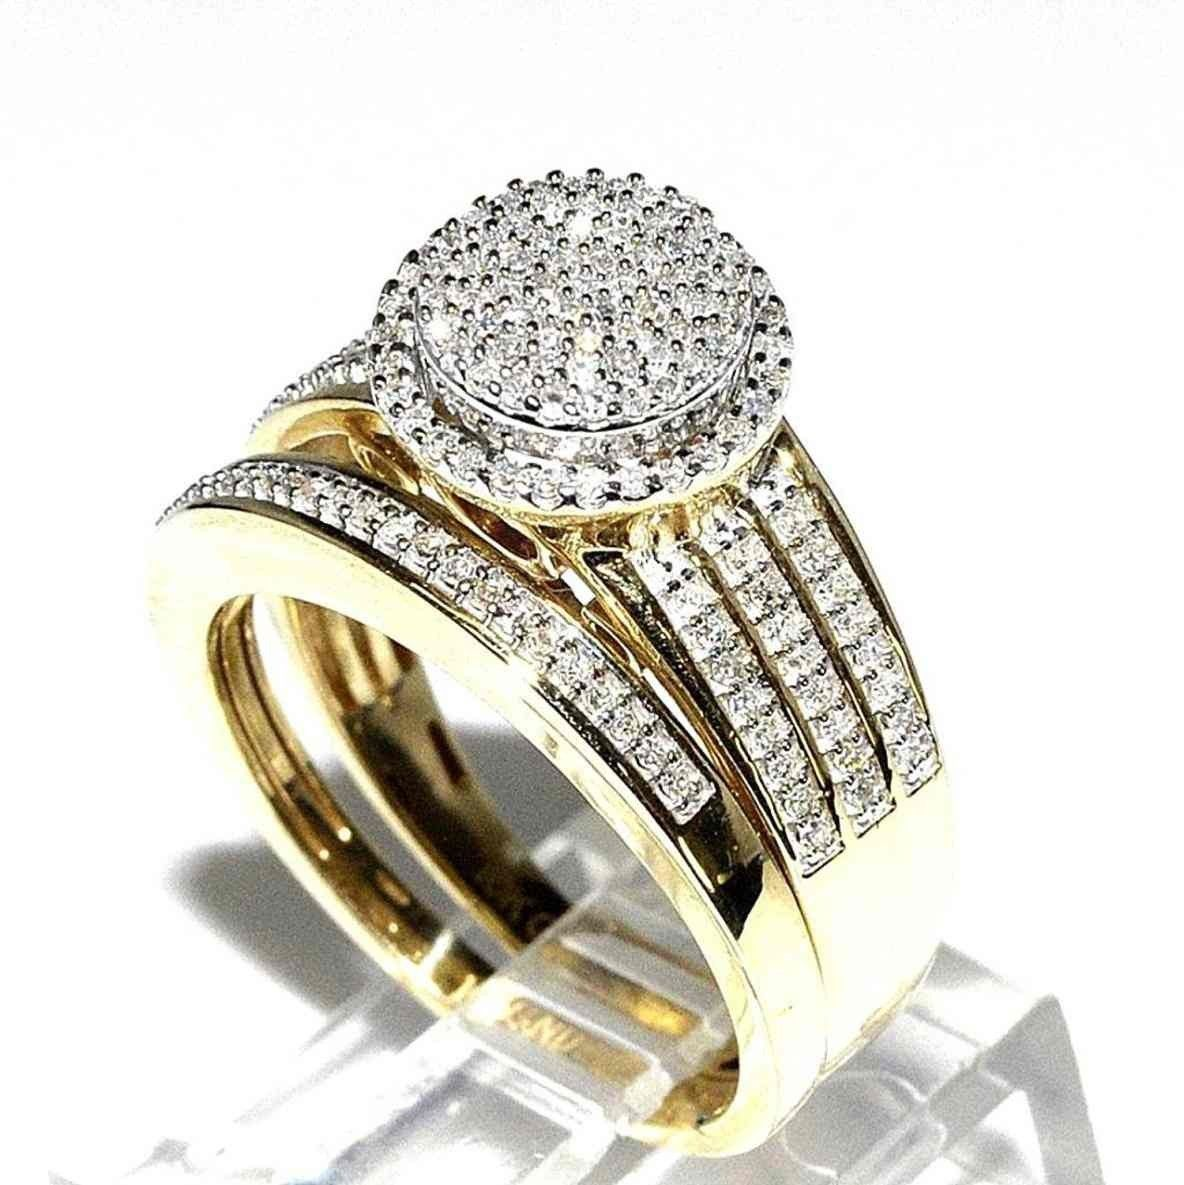 Sears Wedding Rings On Sale Sears Rings Up Final Sale And A Landmark Disappears